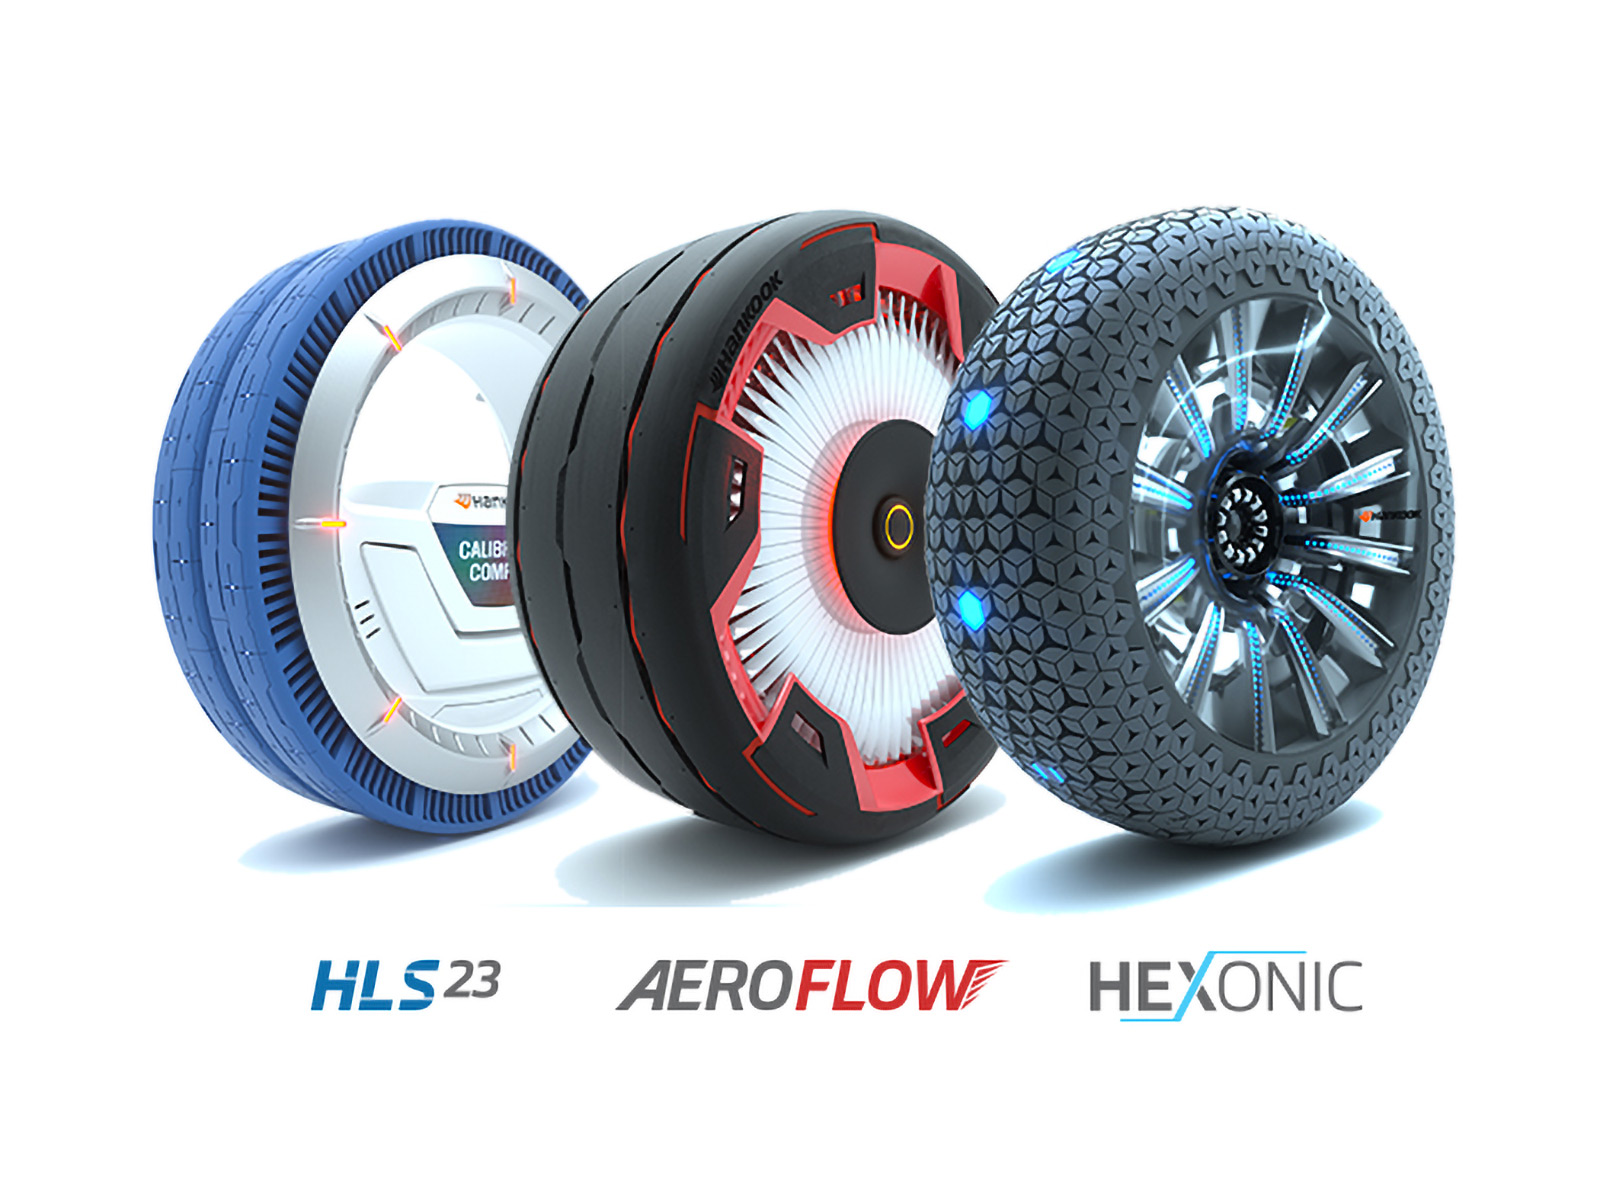 Hankook Aeroflow HLS23 and Hexonic Concept Tires